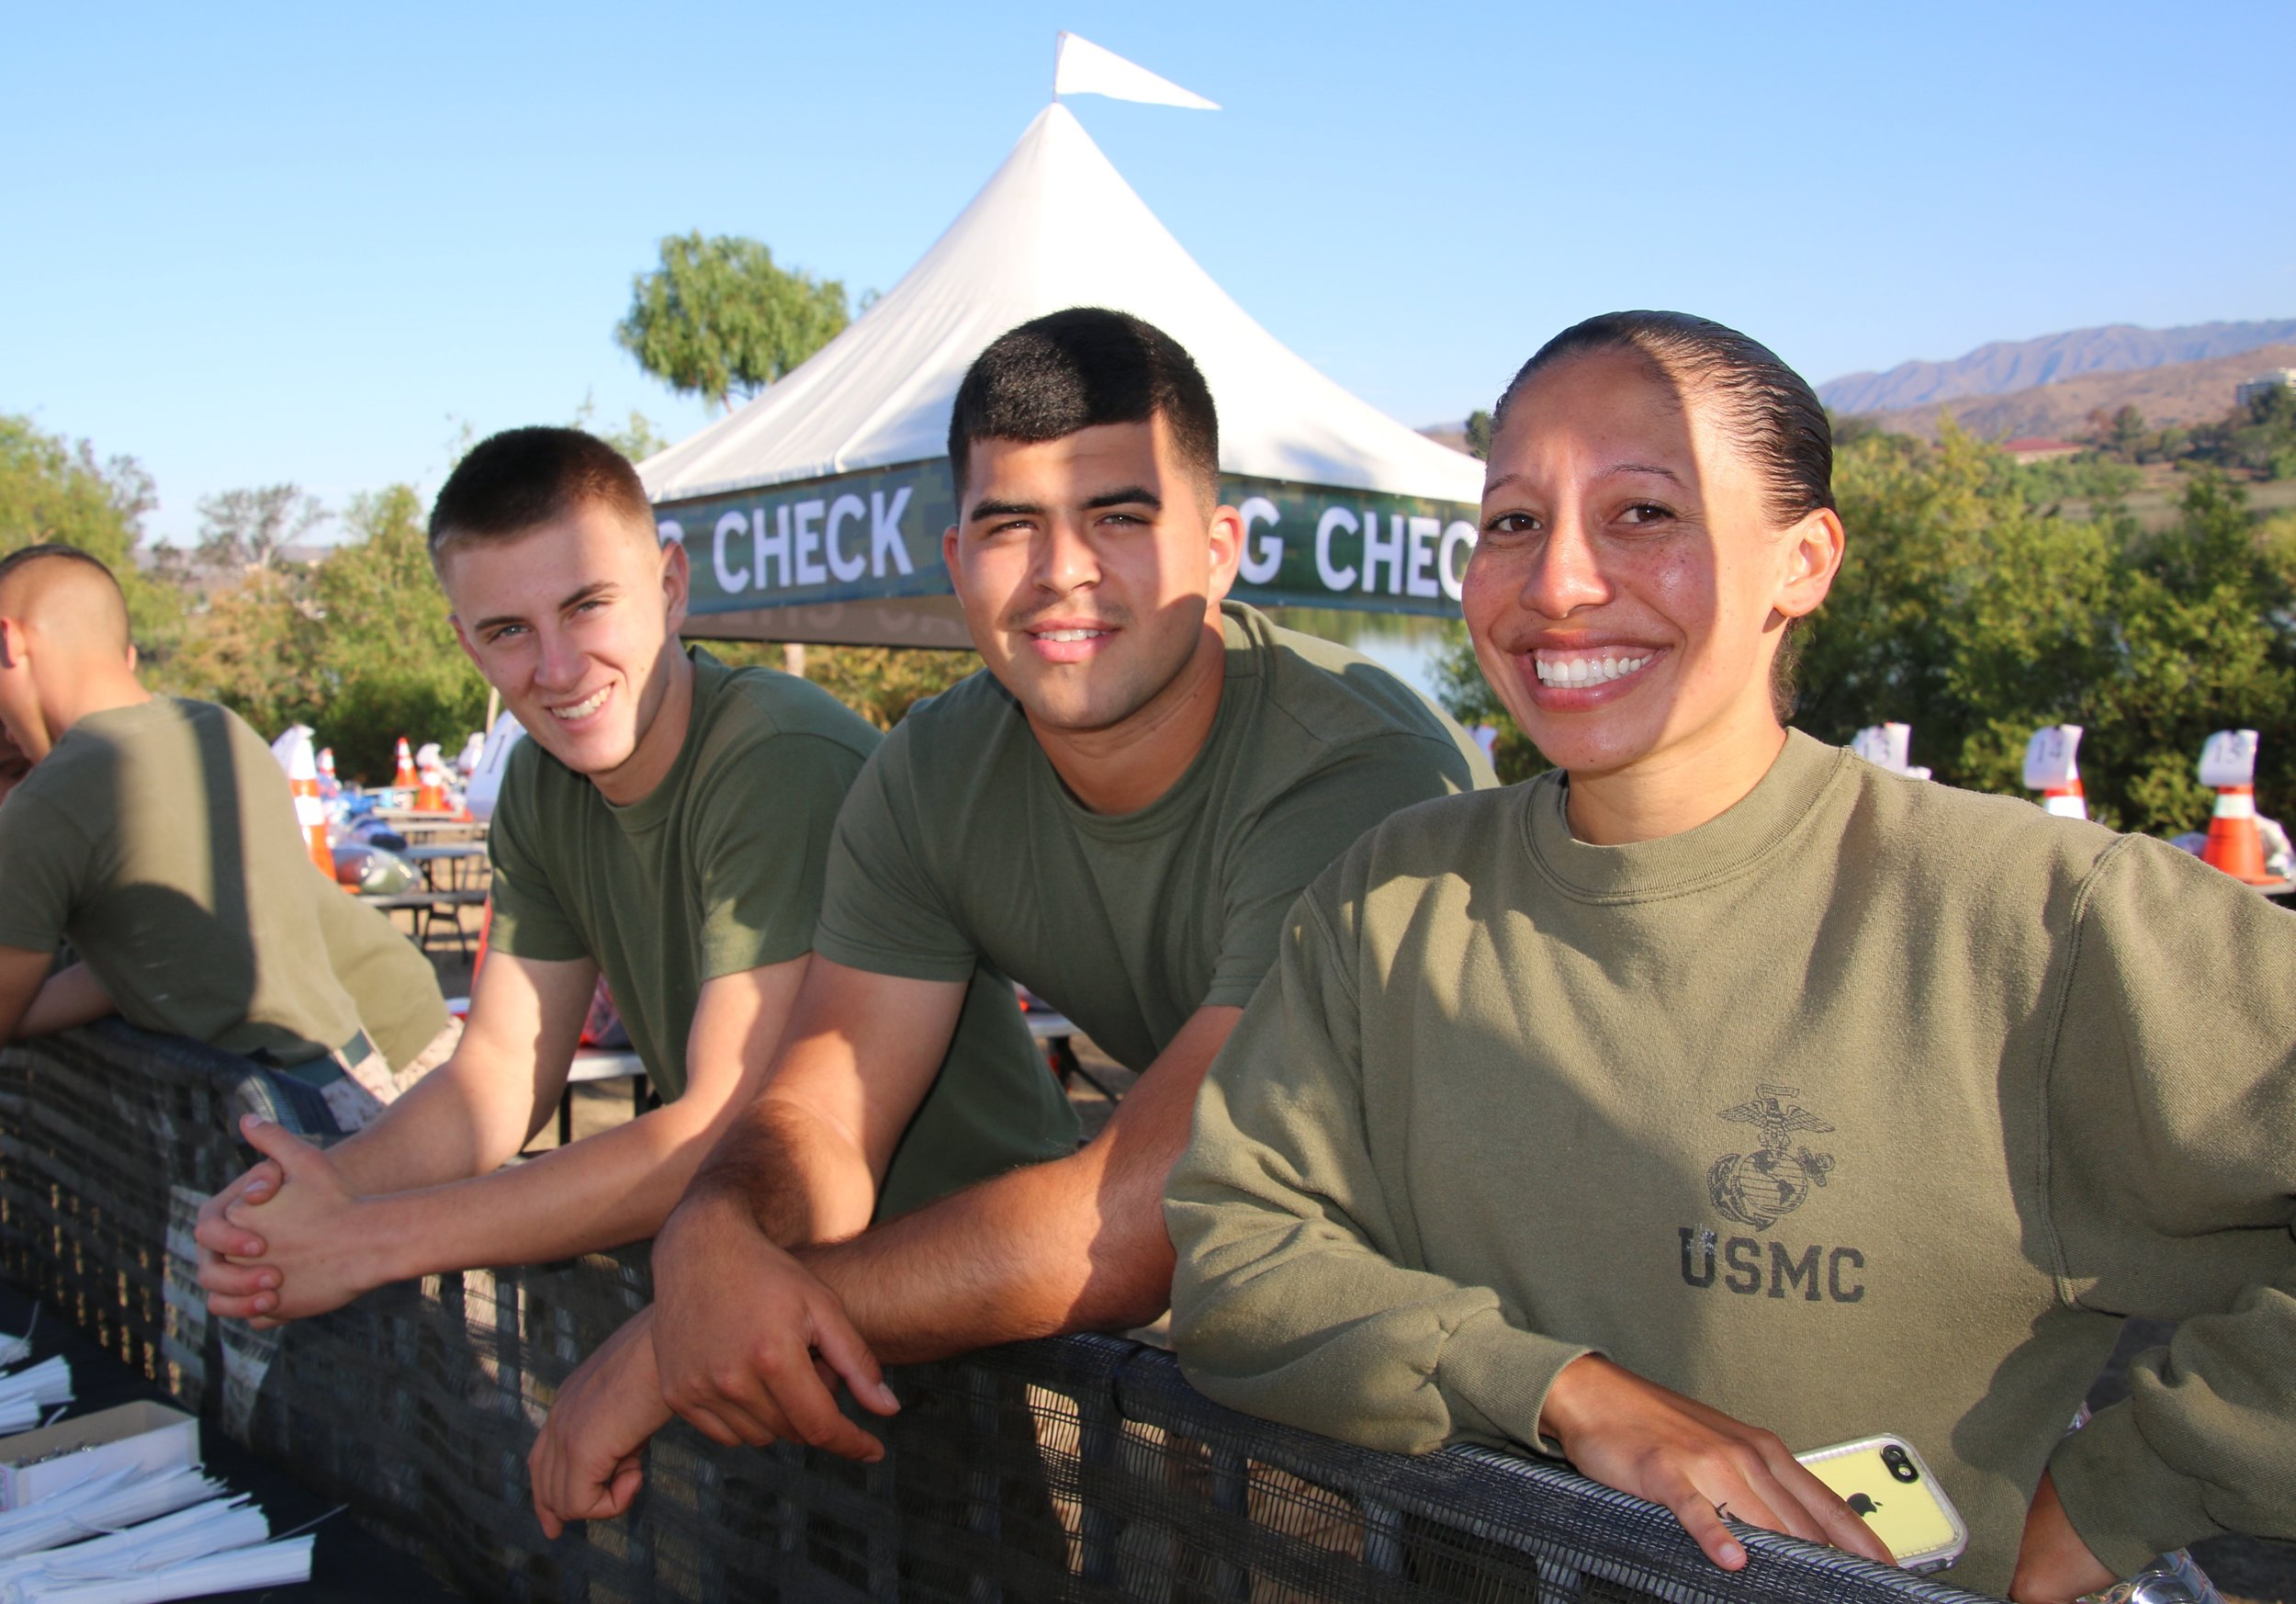 2016 June 4 5 Camp Pendleton CA Marine Corps World Famous Mud Run 92055 (6).jpg